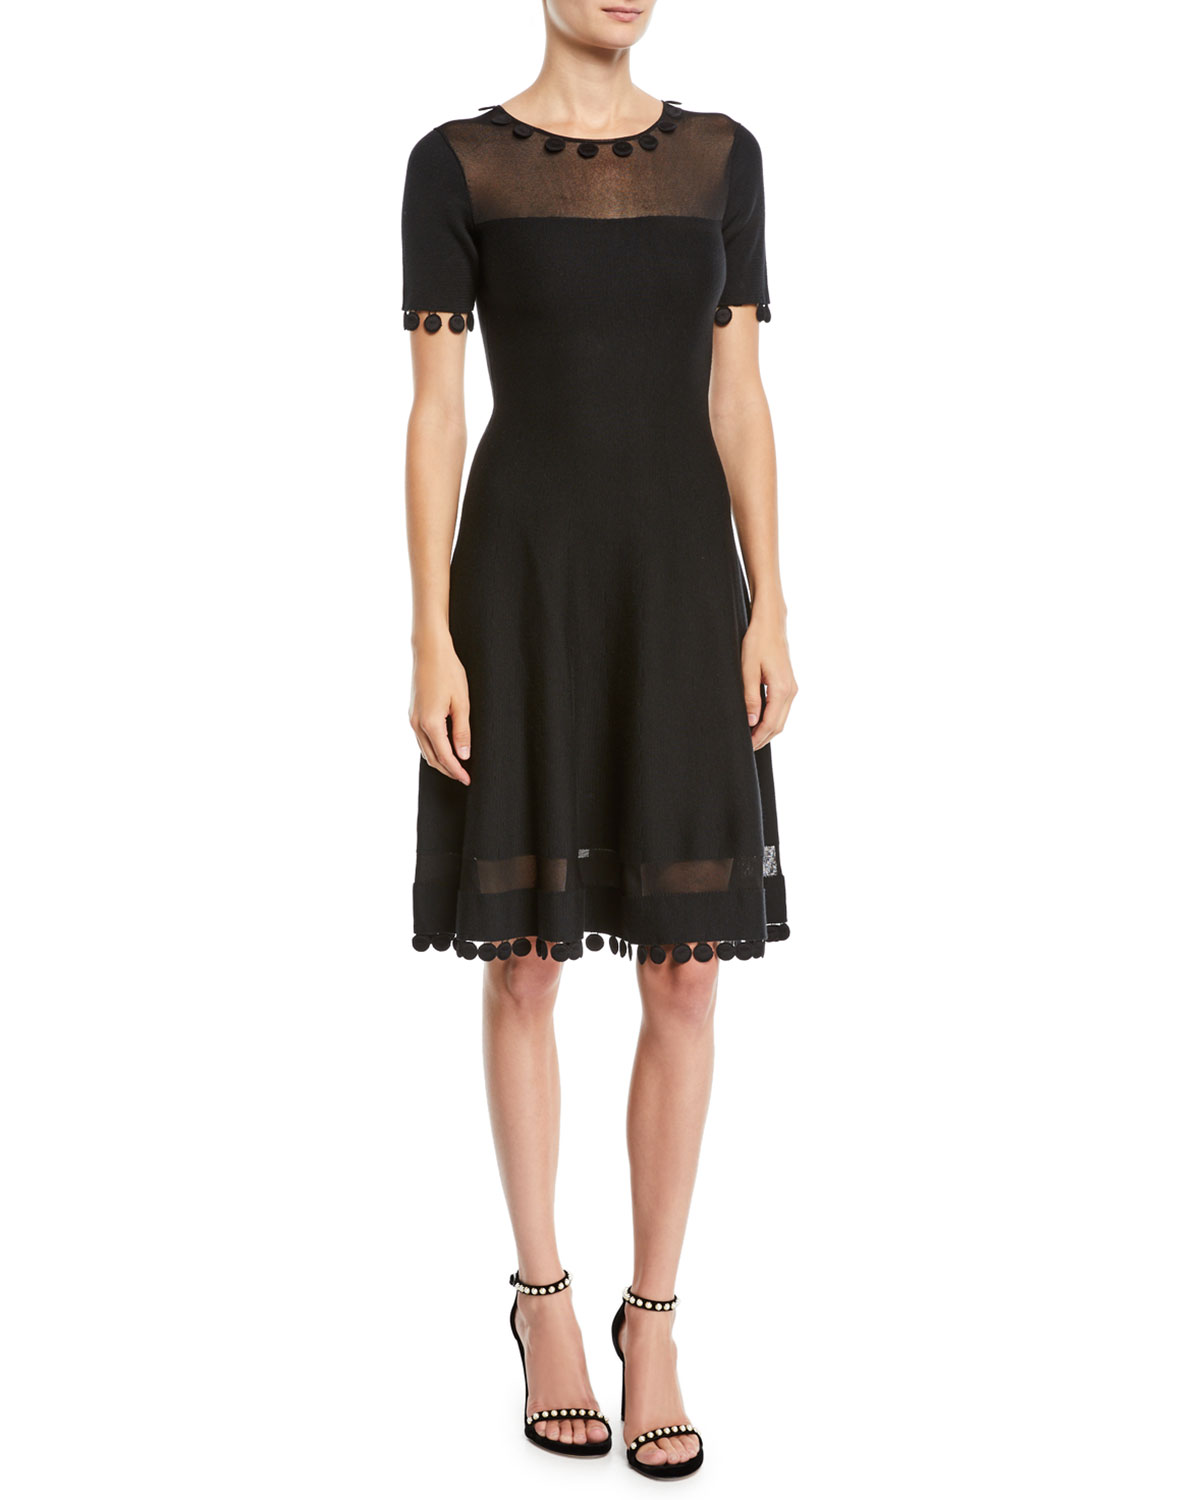 Short-Sleeve Pompom Knit Day Dress W/ Sheer Inserts in Black